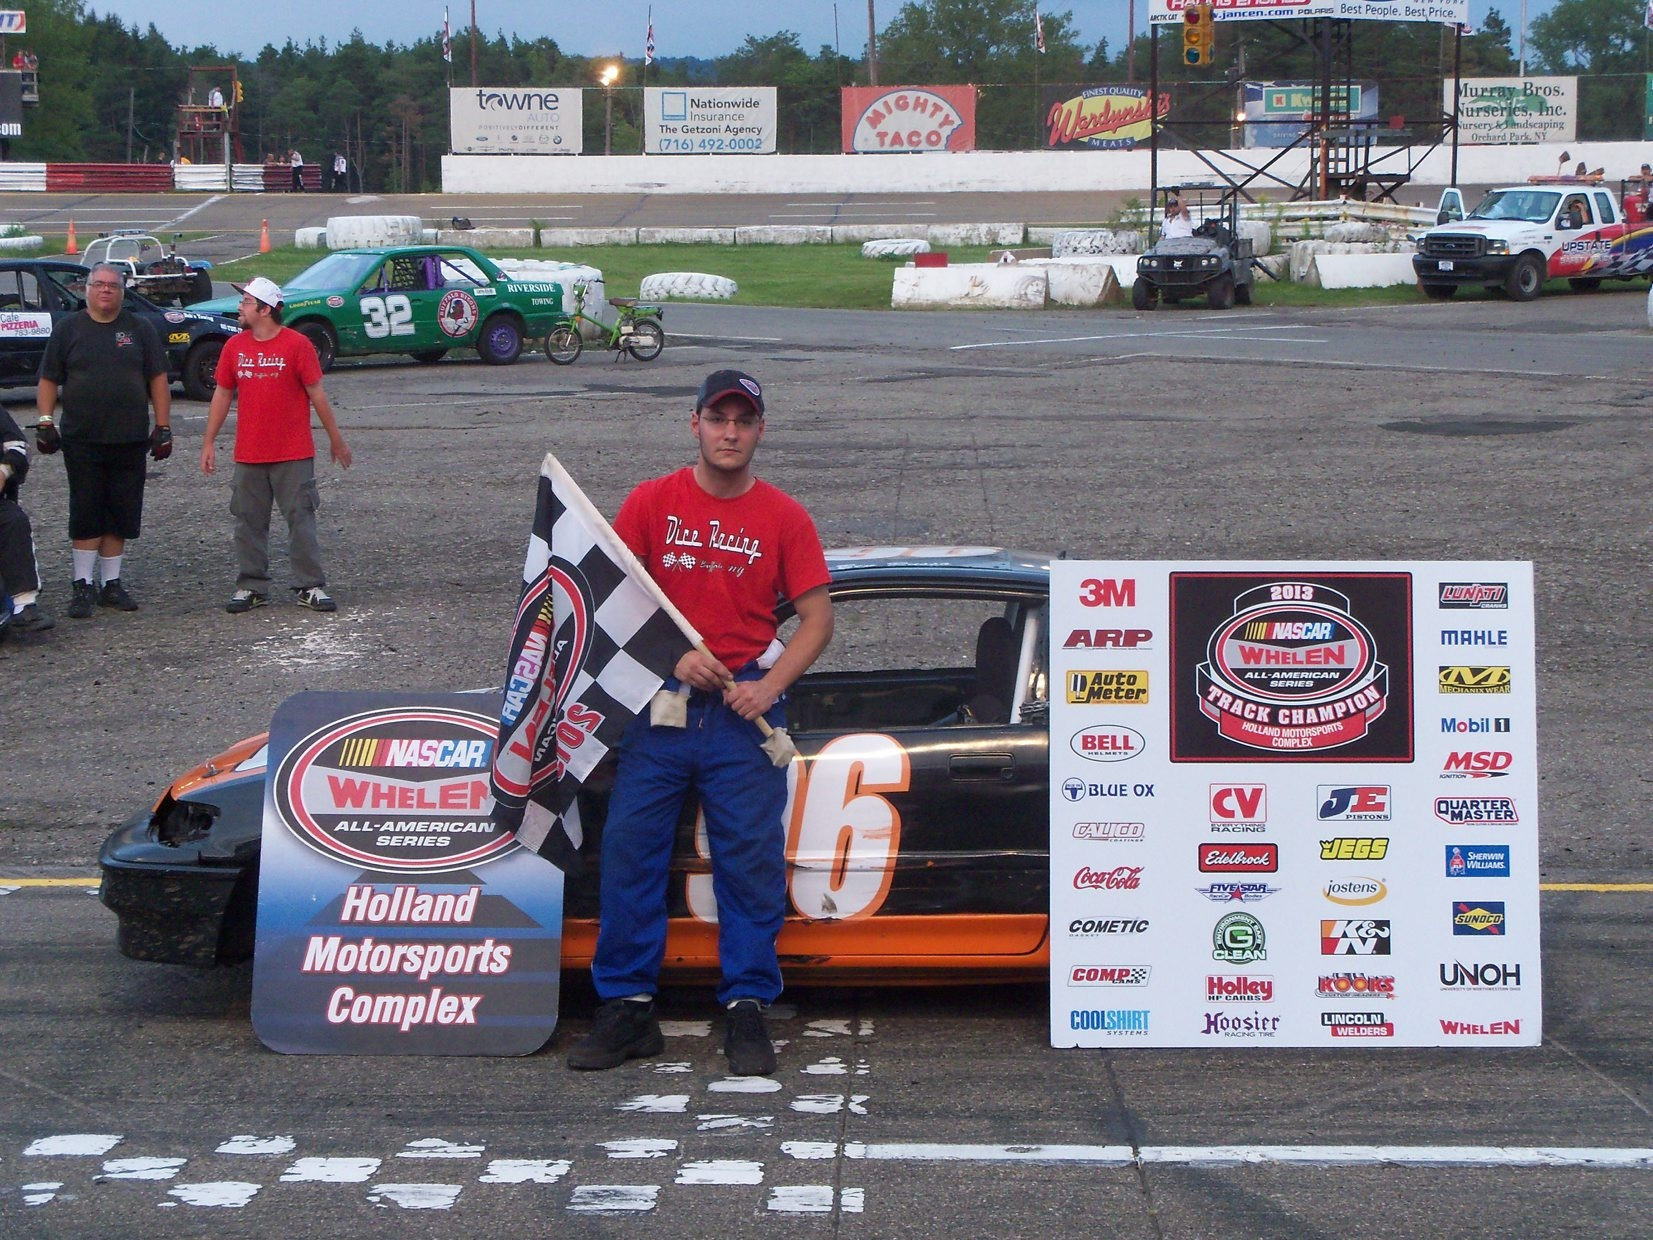 Ben Russo is the Hornets division champion at Holland Motorsports Complex.